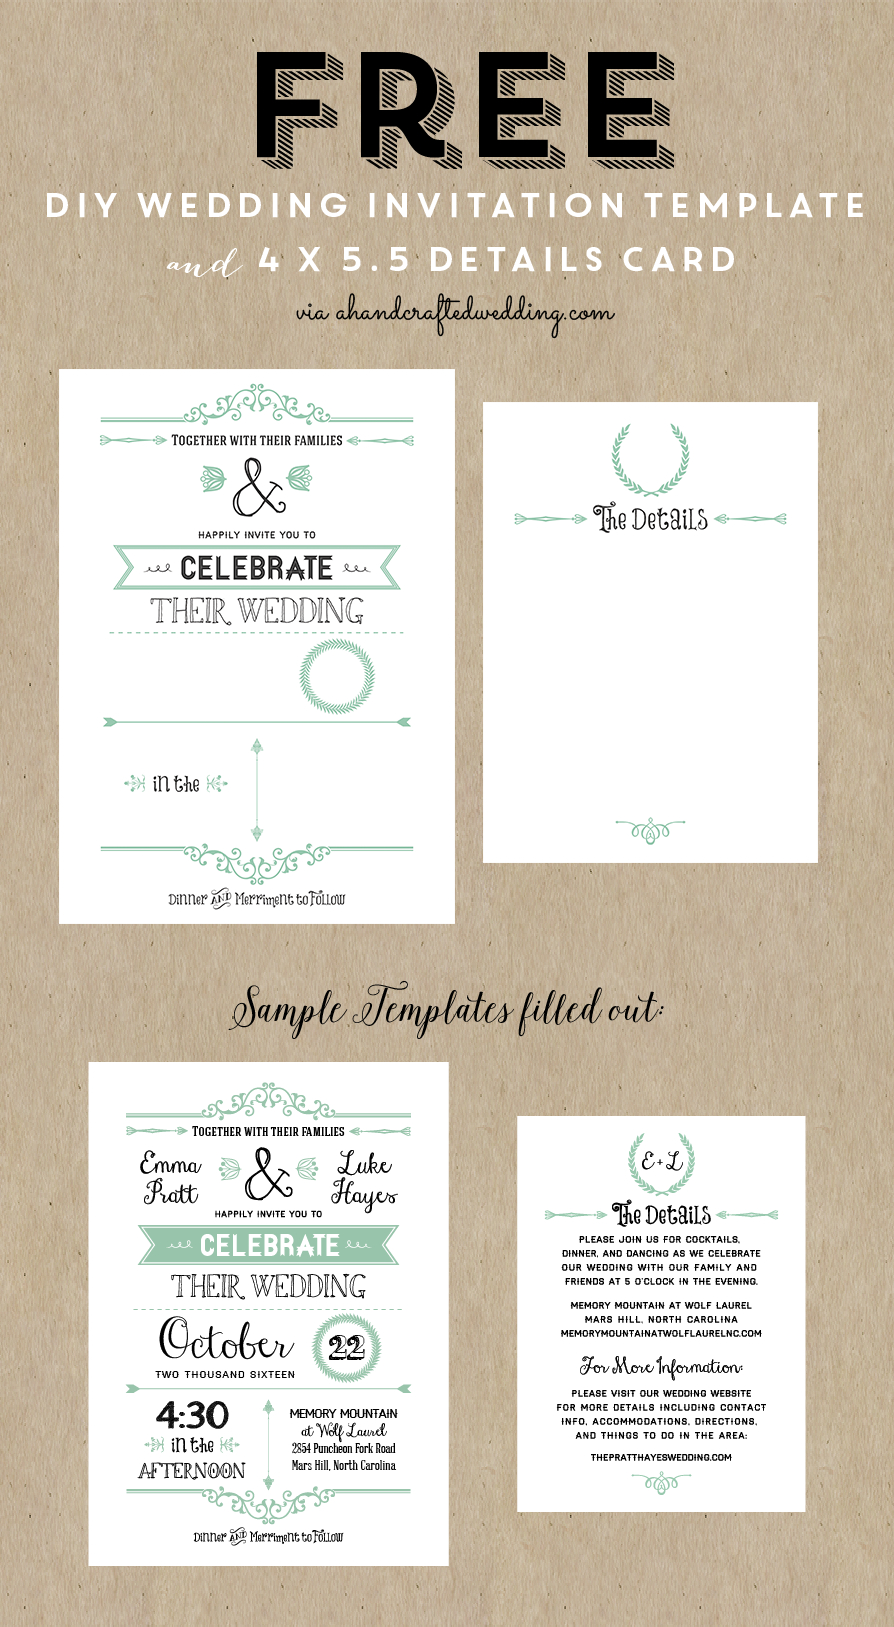 Free Printable Wedding Invitation Template | Wedding | Pinterest - Free Printable Wedding Invitation Kits